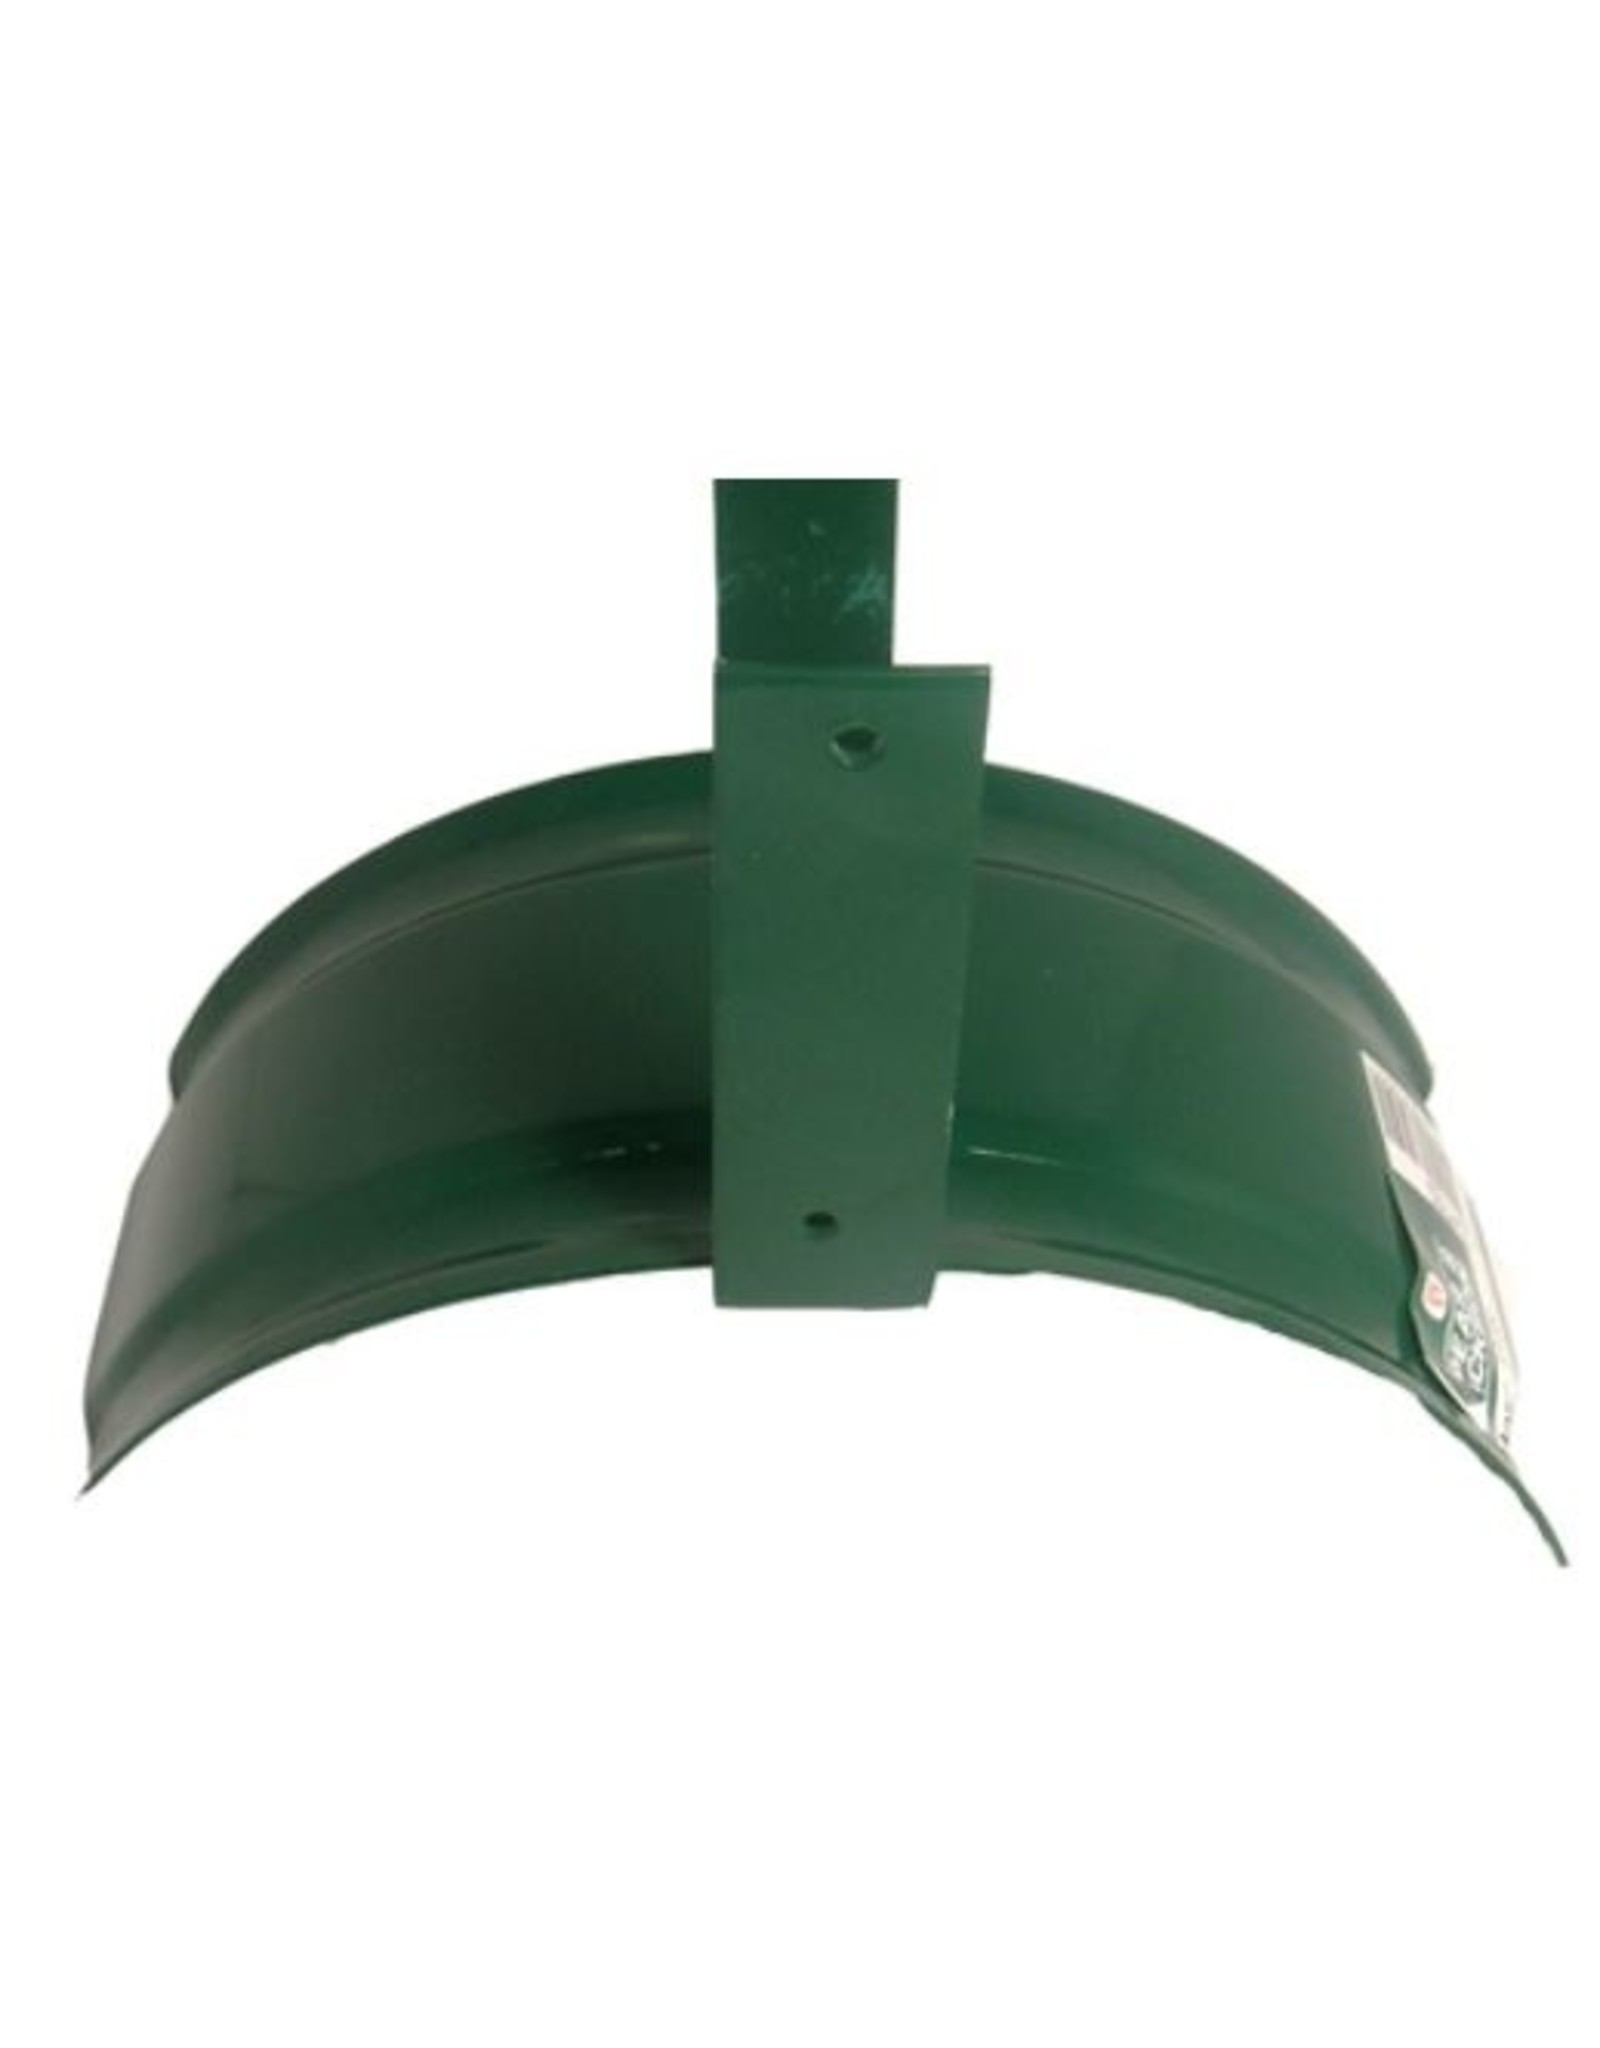 Spear & Jackson Brunswick Green Metal Hose Tidy